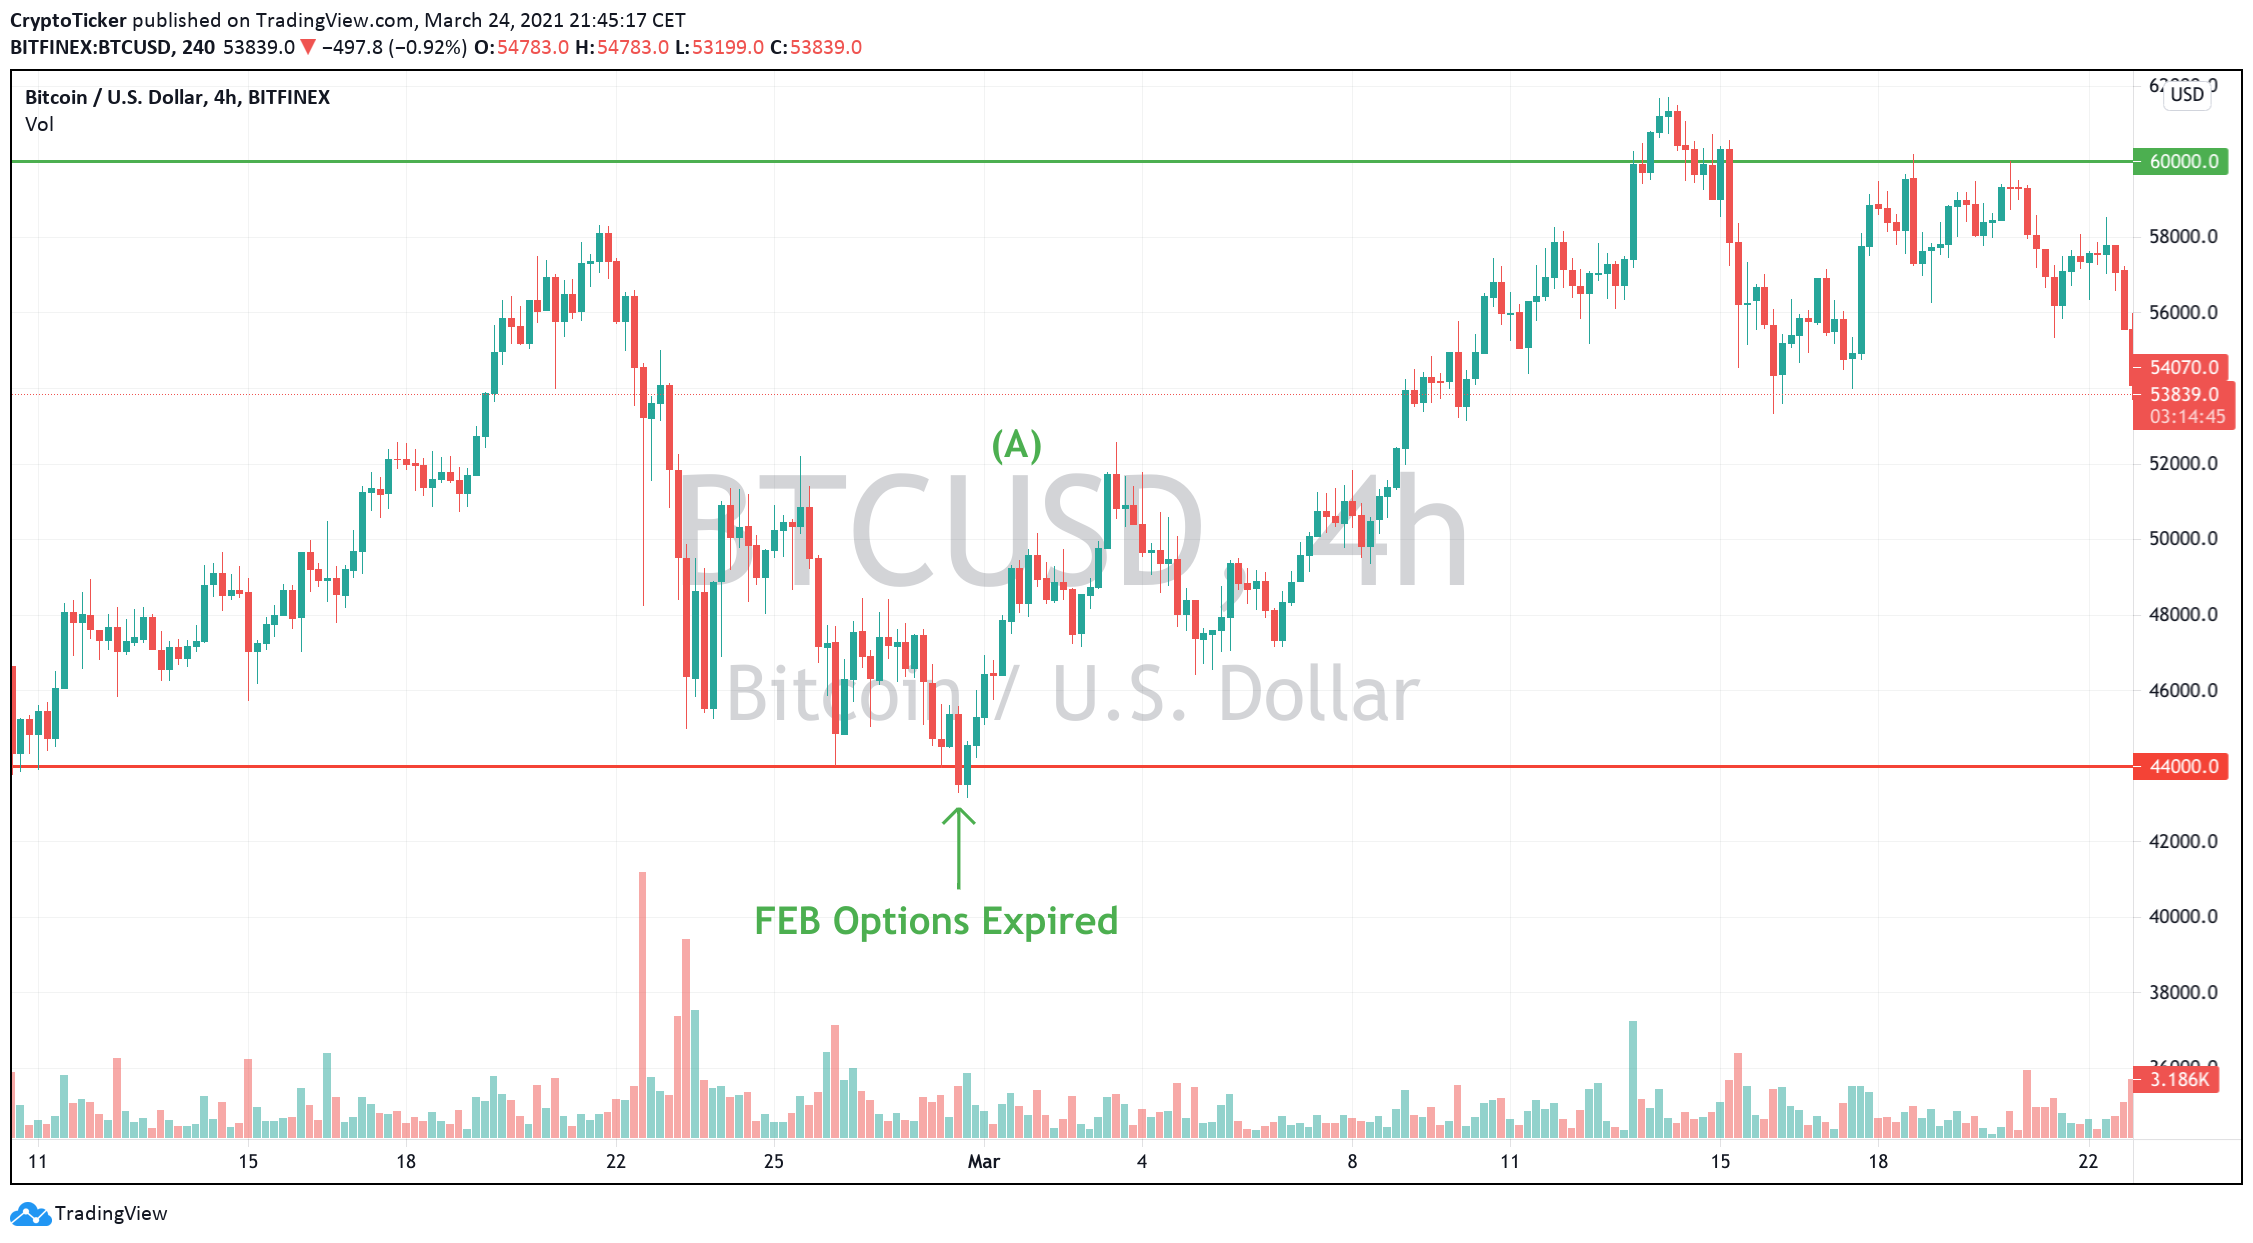 BTC/USD 4-hour chart showing previous price-action of BTC post options expiry